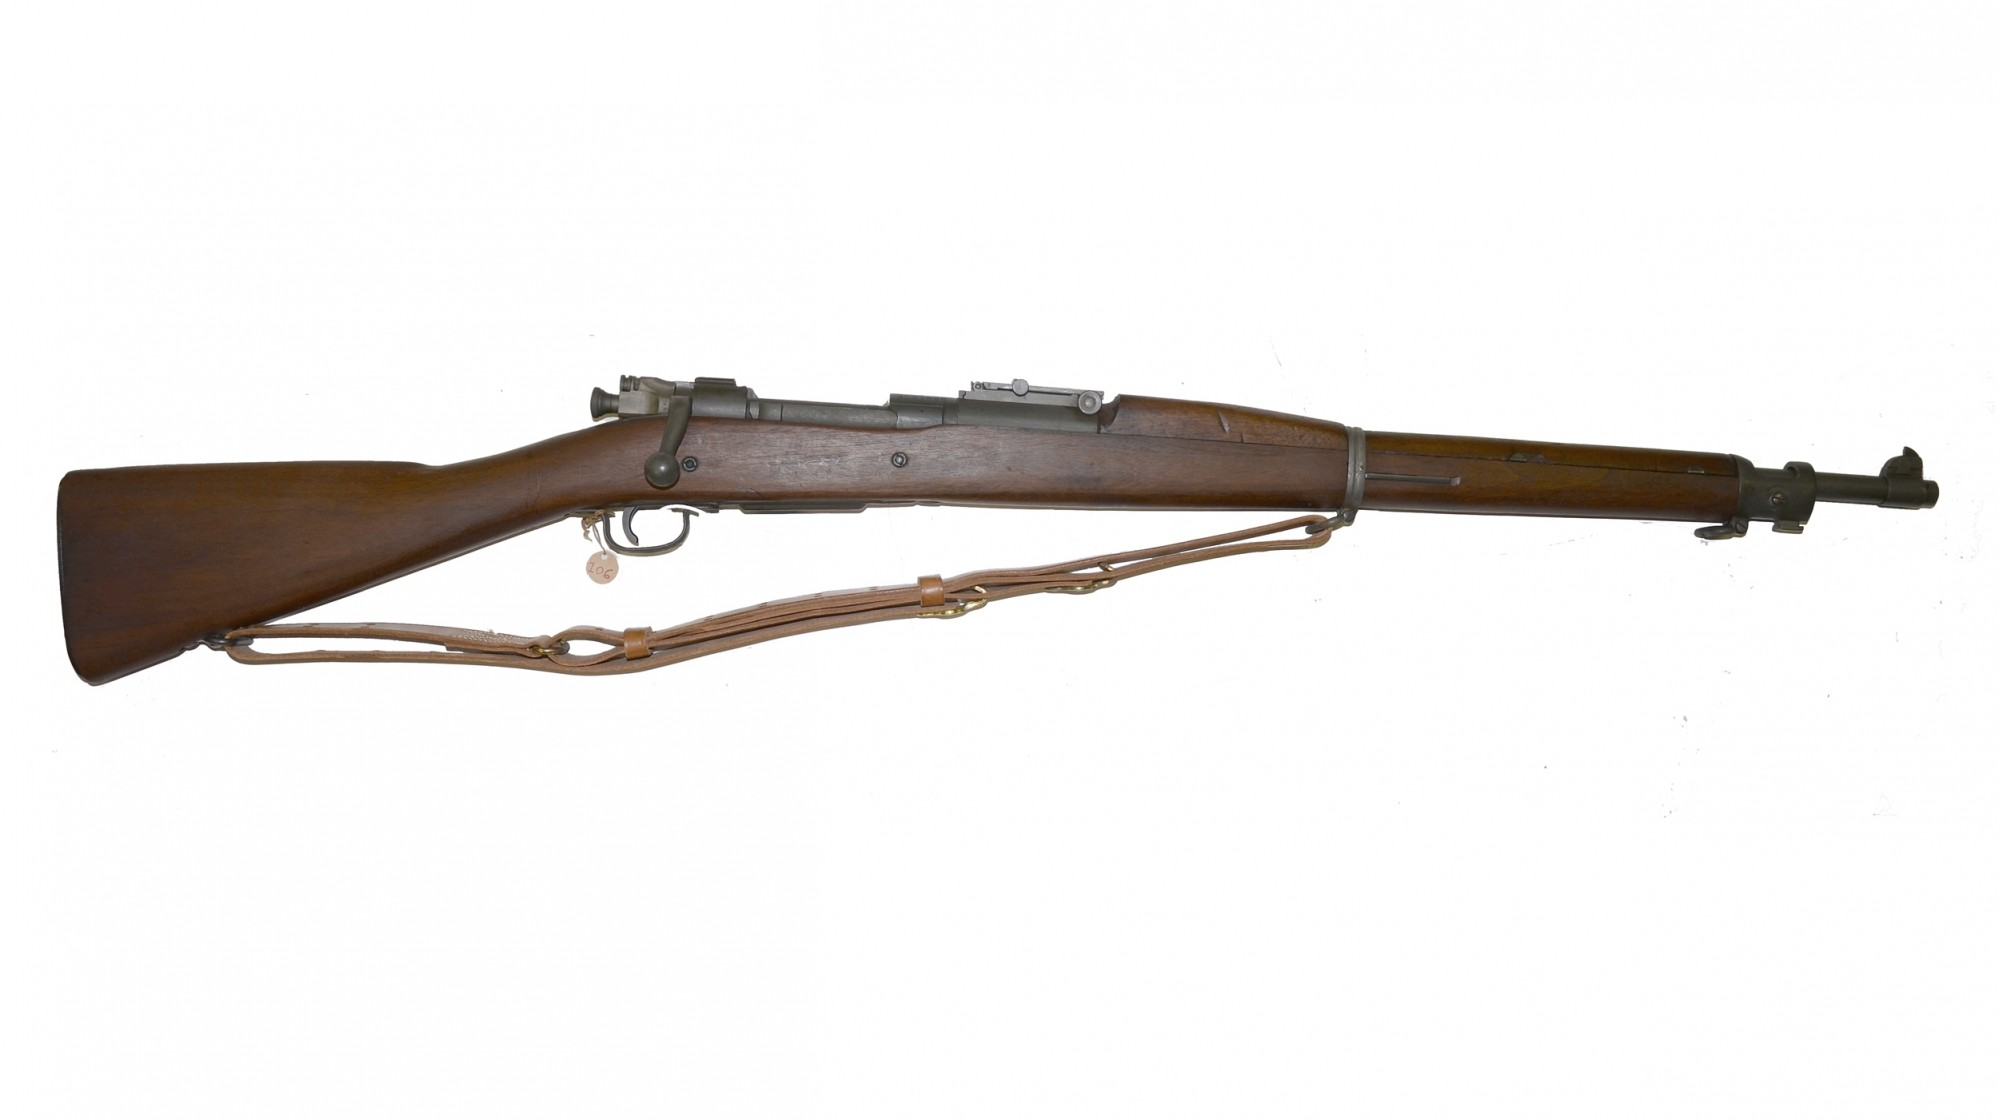 MODEL 1903 RIFLE MADE BY REMINGTON ARMS CO.